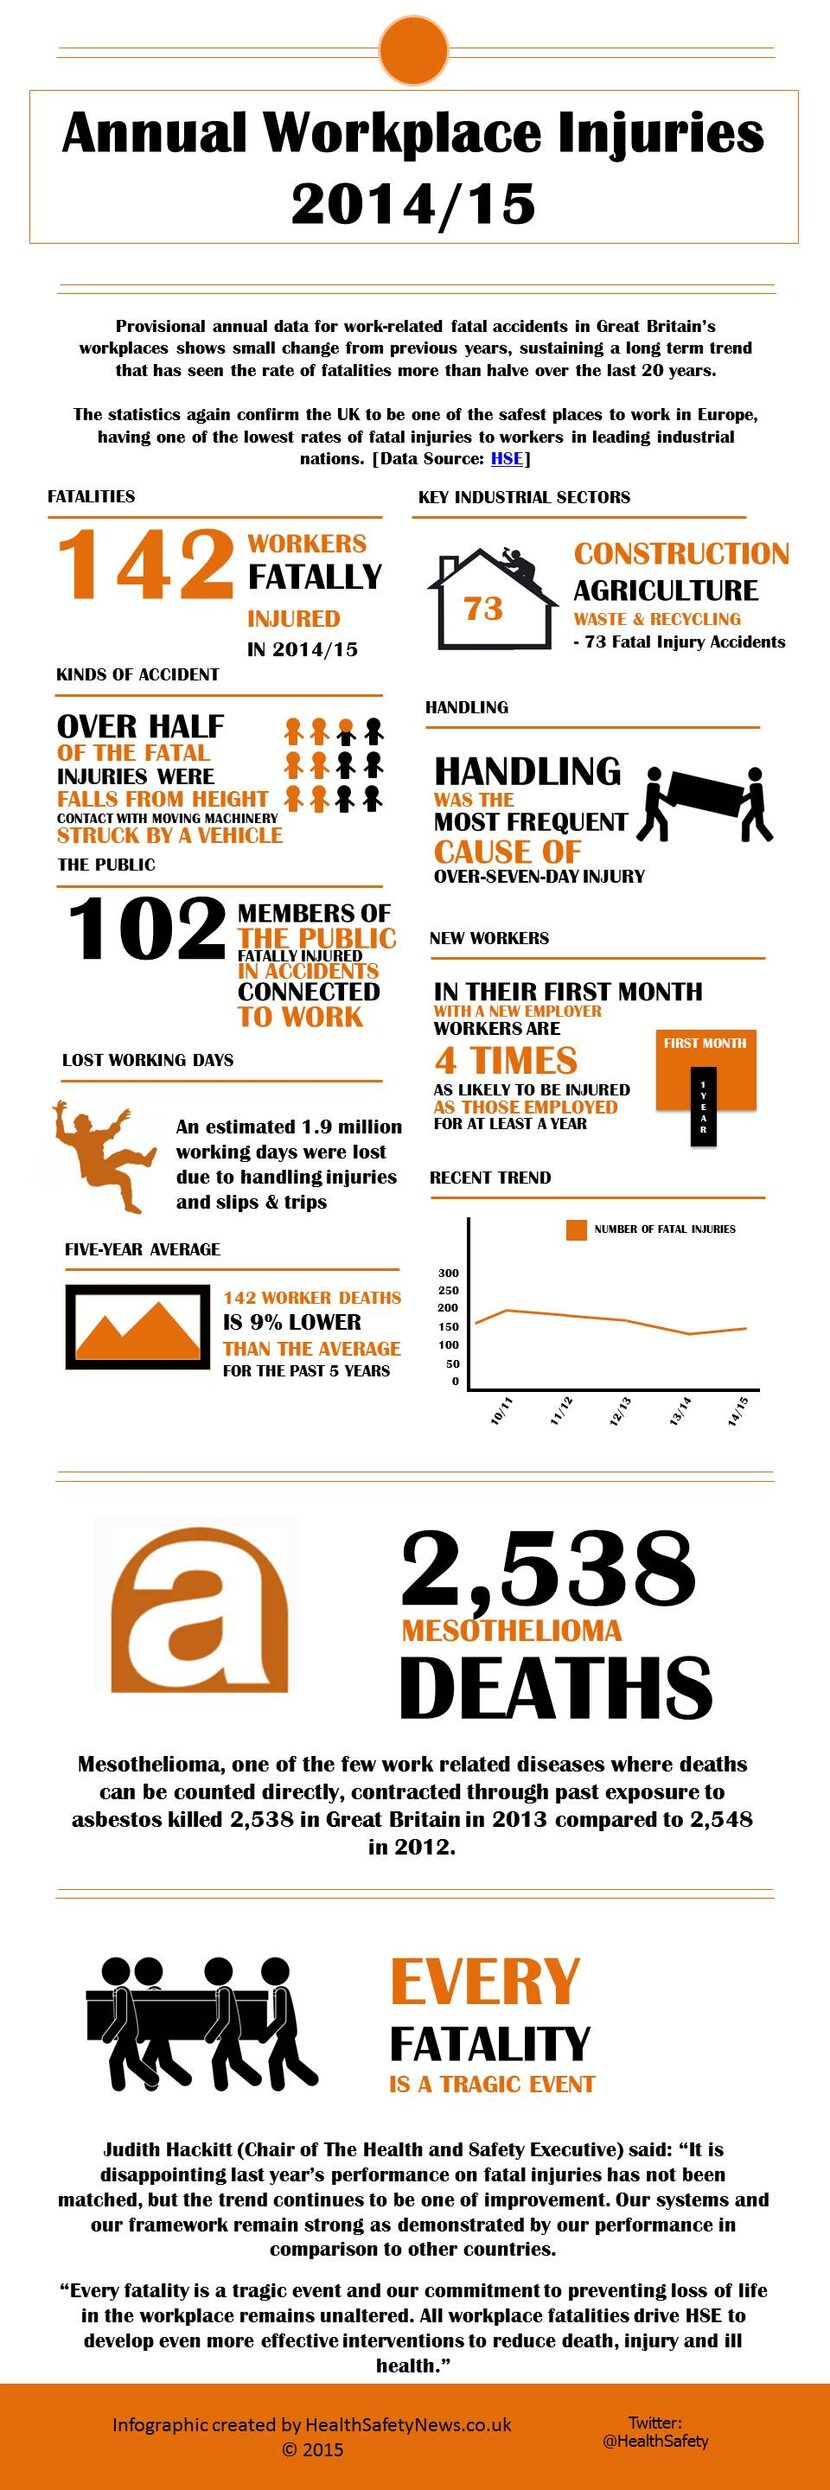 safety and health infographic showing annual workplace injury statistics for 2014/15